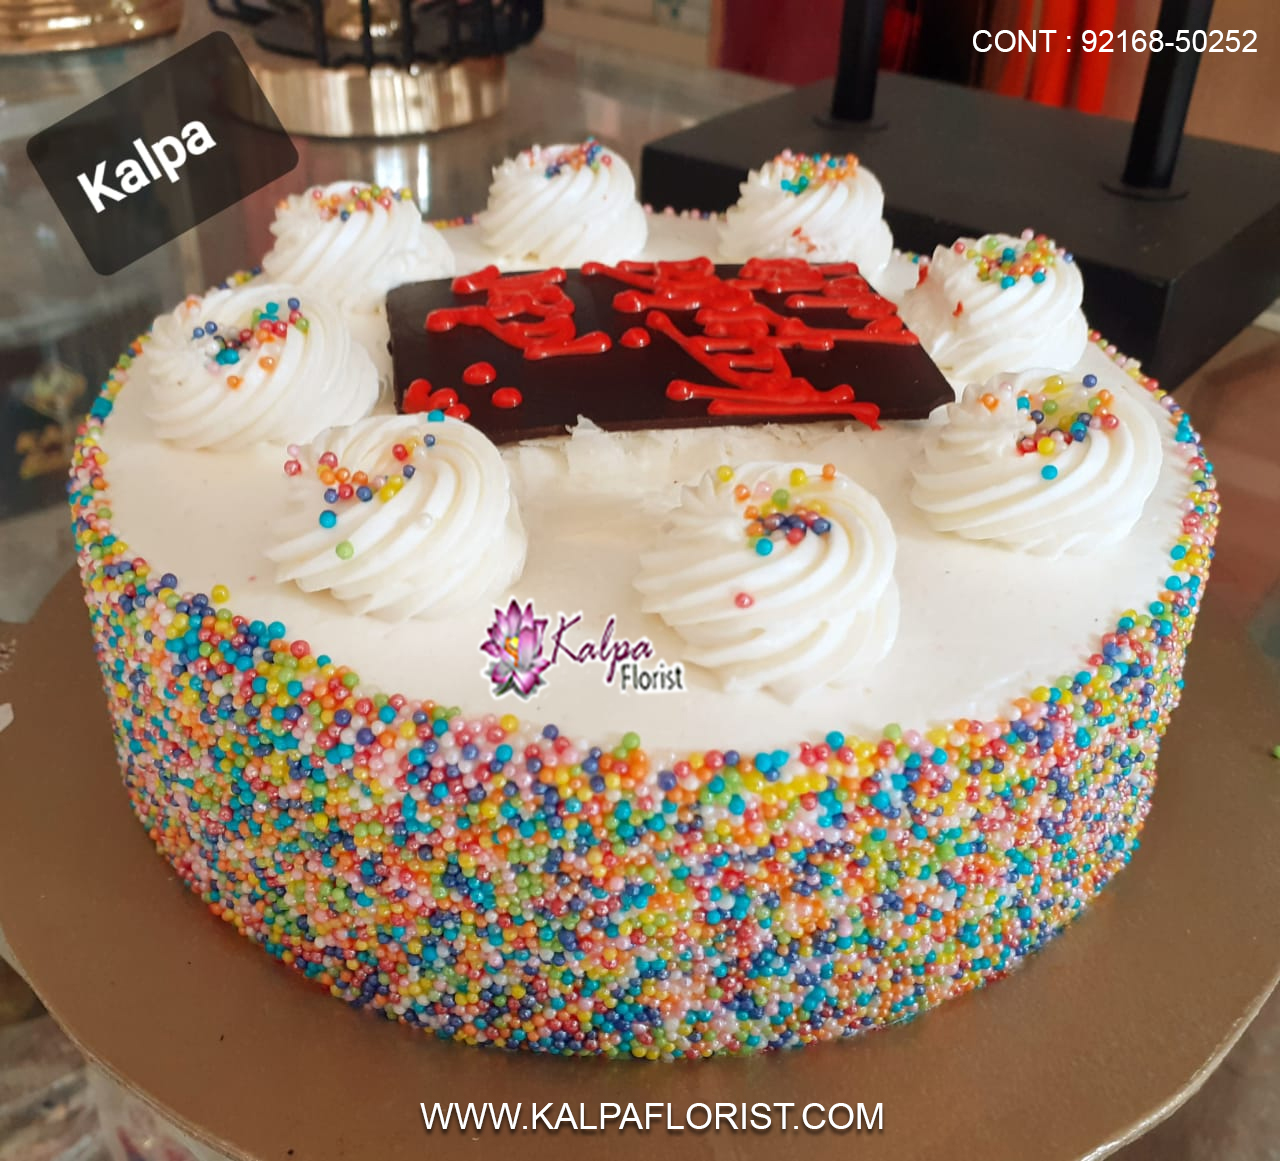 Birthday Cake Unique | Birthday Cake Unique | Kalpa Florist. Order delicious cake on , anniversary and get same day online cake delivery.